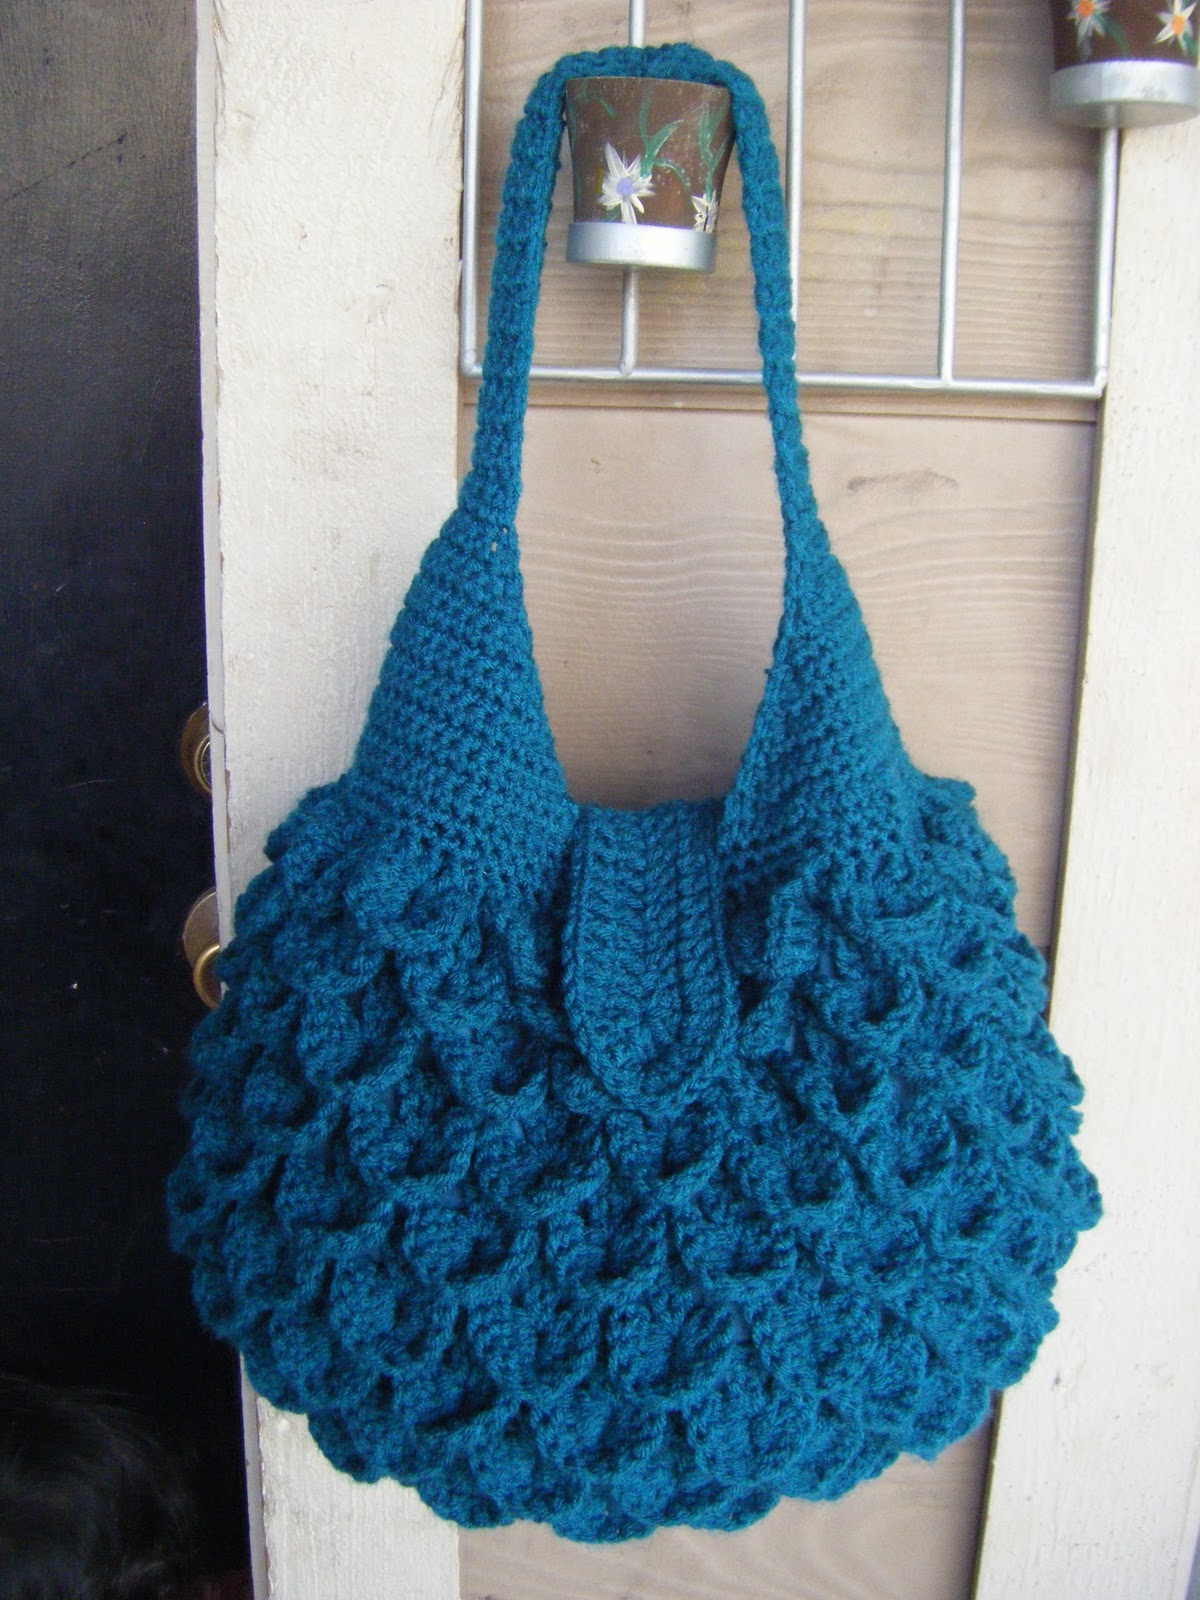 Crochet Handbag Pattern : Best Patterns: Crocodile Crochet Bag PATTERN